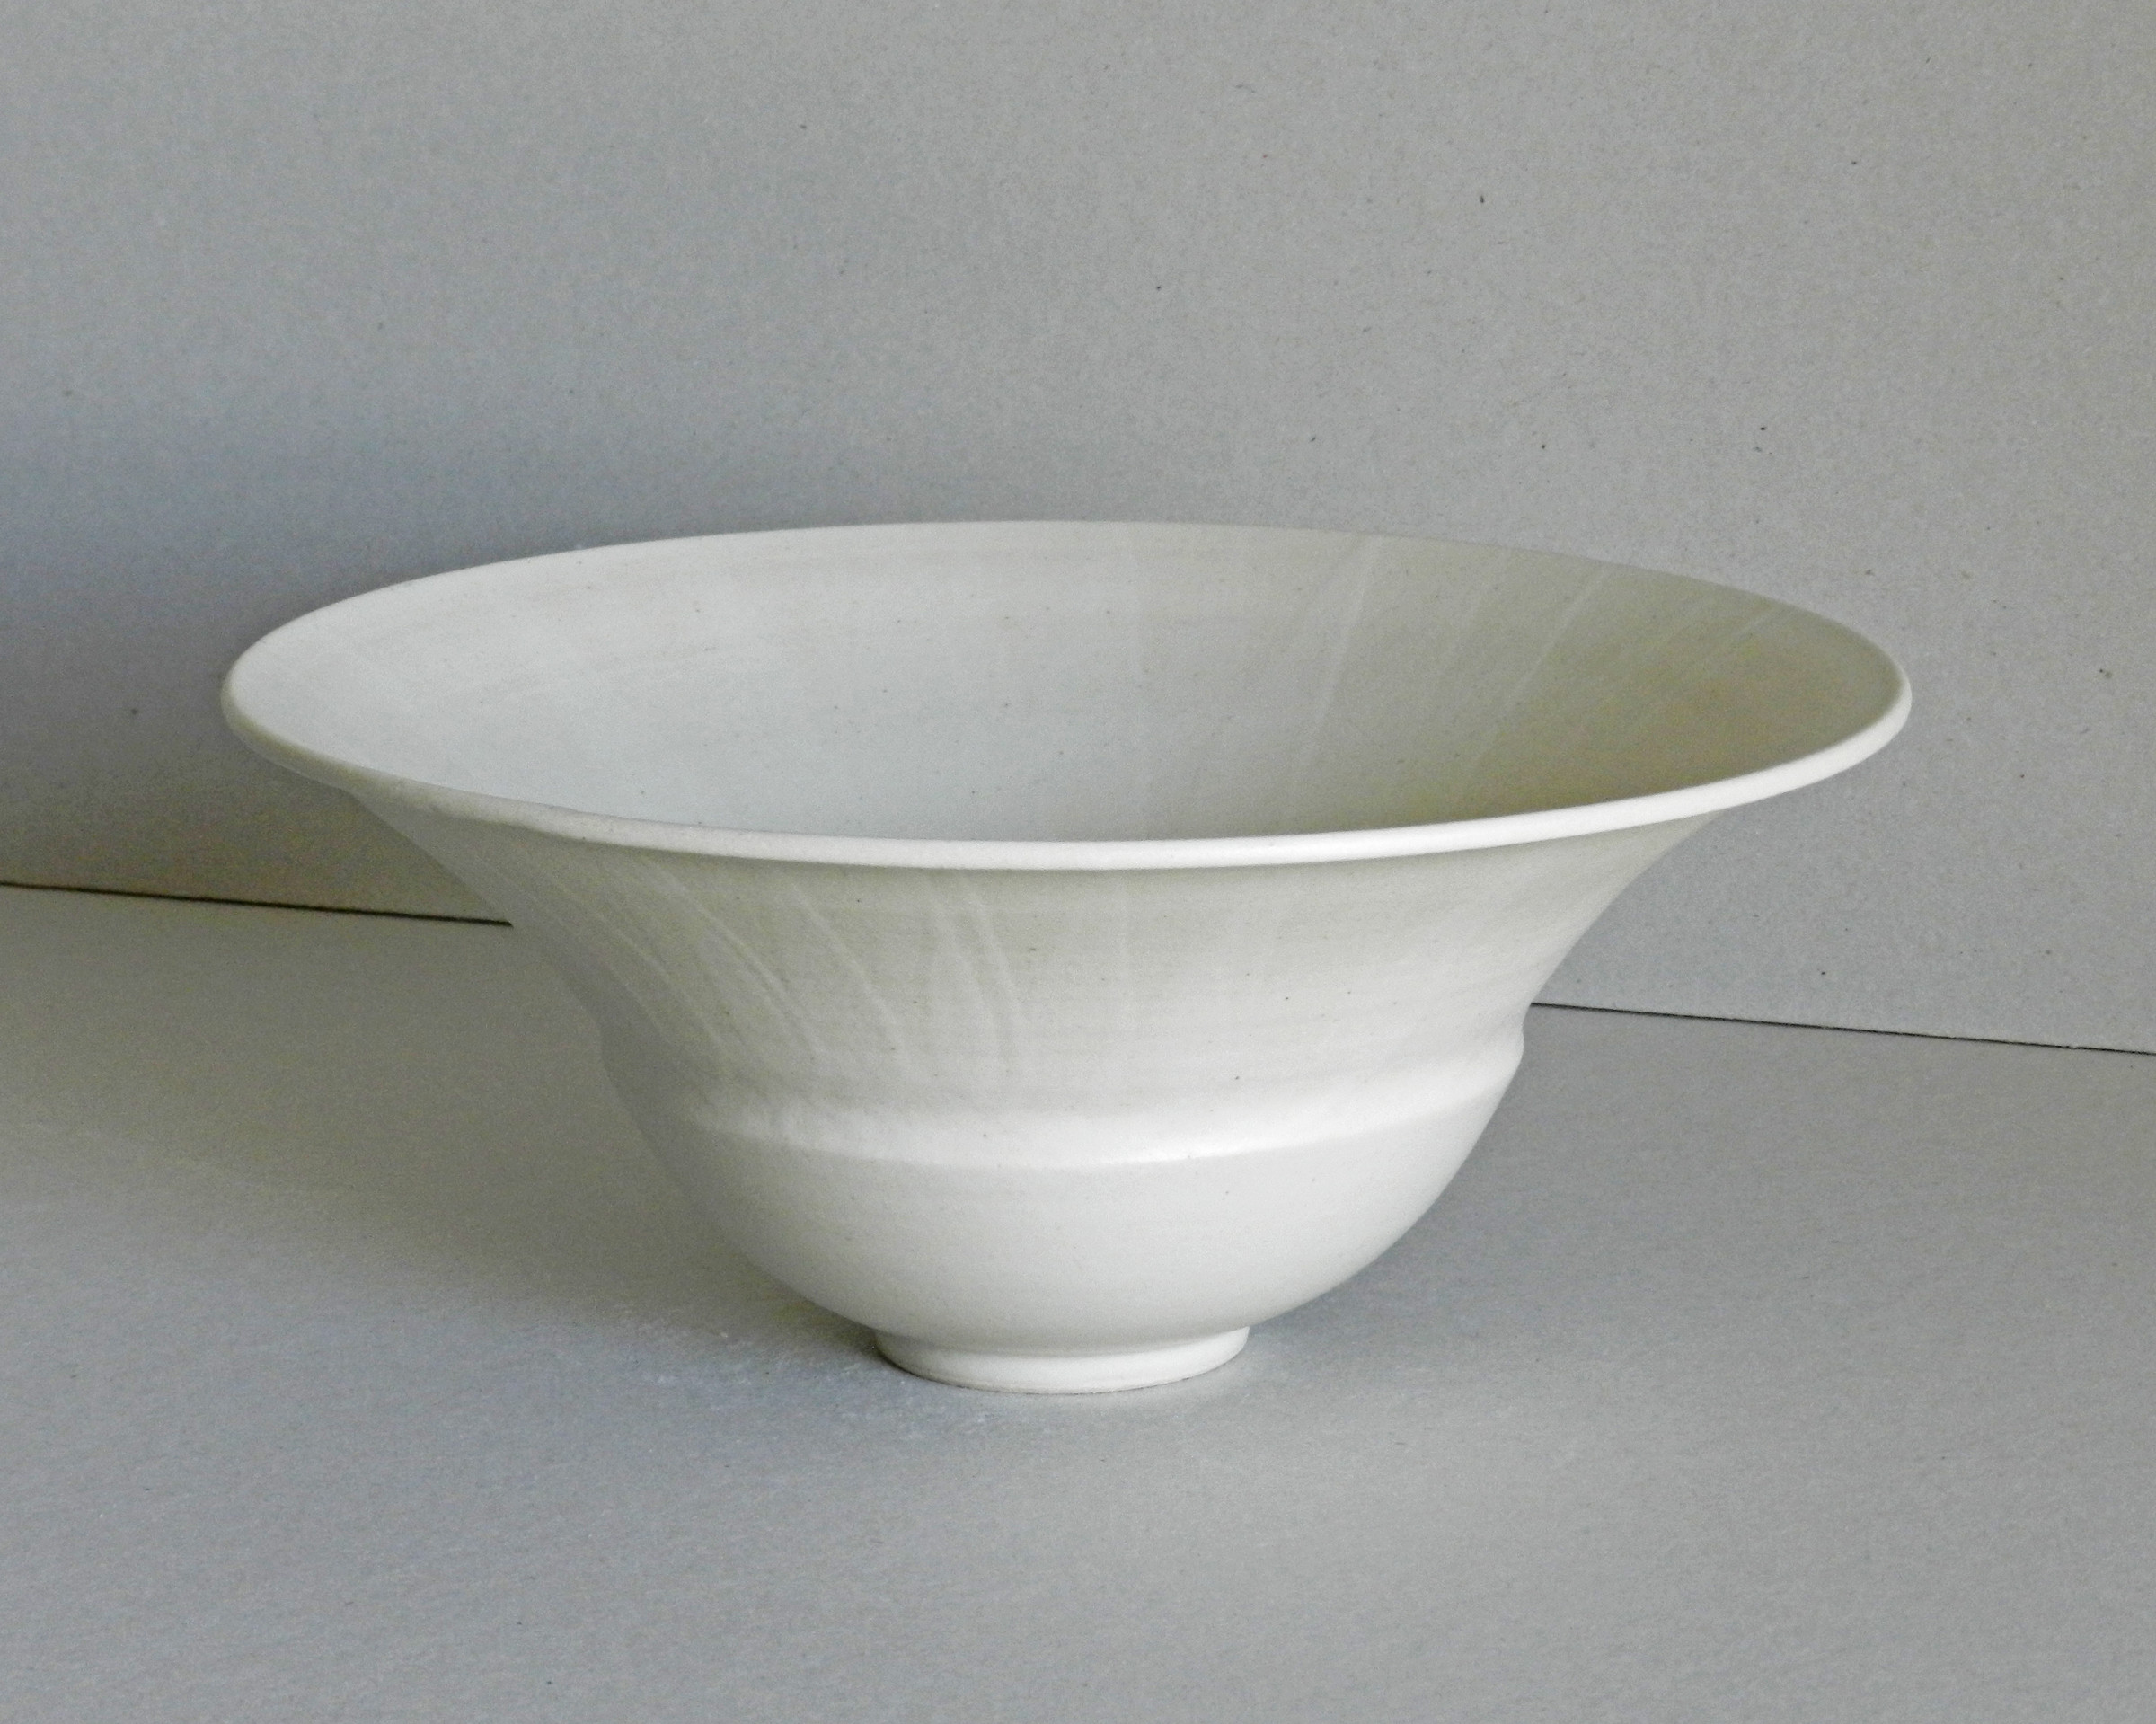 "<span class=""link fancybox-details-link""><a href=""/artists/243-christine-feiler/works/6865-christine-feiler-double-rim-bowl-2018/"">View Detail Page</a></span><div class=""artist""><strong>Christine Feiler</strong></div> b. 1948 <div class=""title""><em>Double rim bowl</em>, 2018</div> <div class=""signed_and_dated"">Ceramicist mark on base</div> <div class=""medium"">Stoneware with enamels</div><div class=""price"">£320.00</div><div class=""copyright_line"">Copyright The Artist</div>"